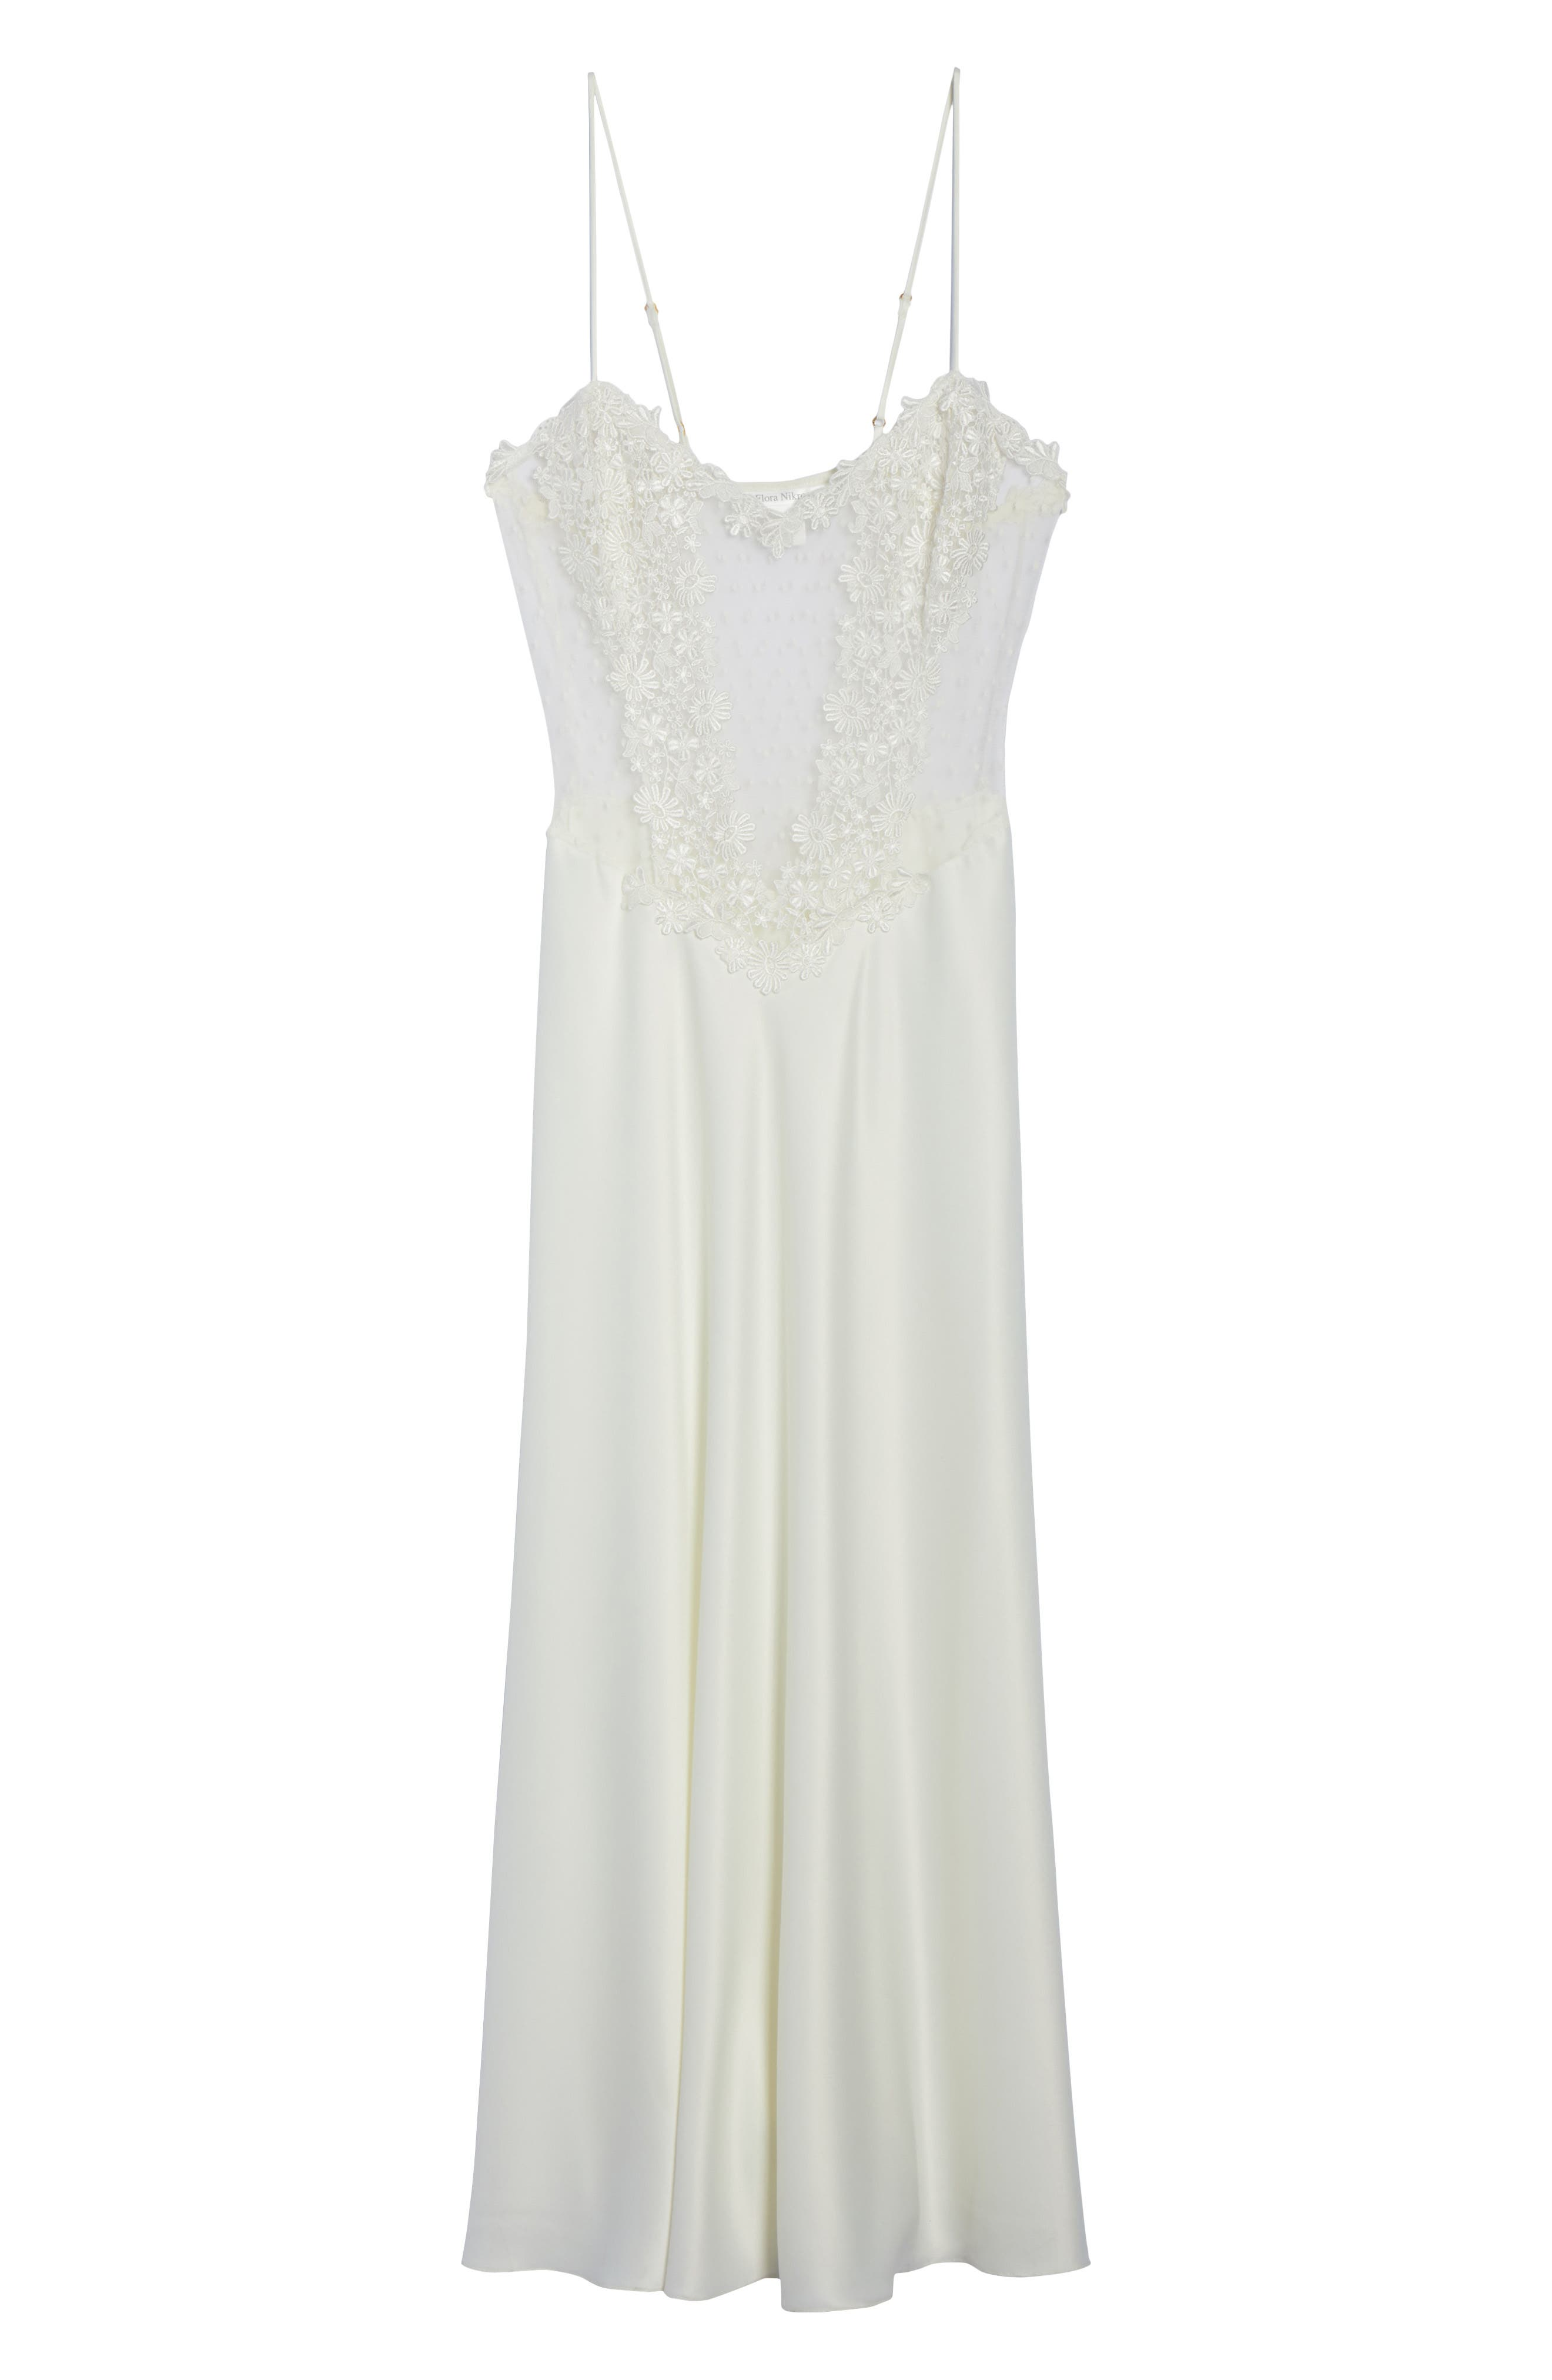 Showstopper Nightgown,                             Alternate thumbnail 6, color,                             901